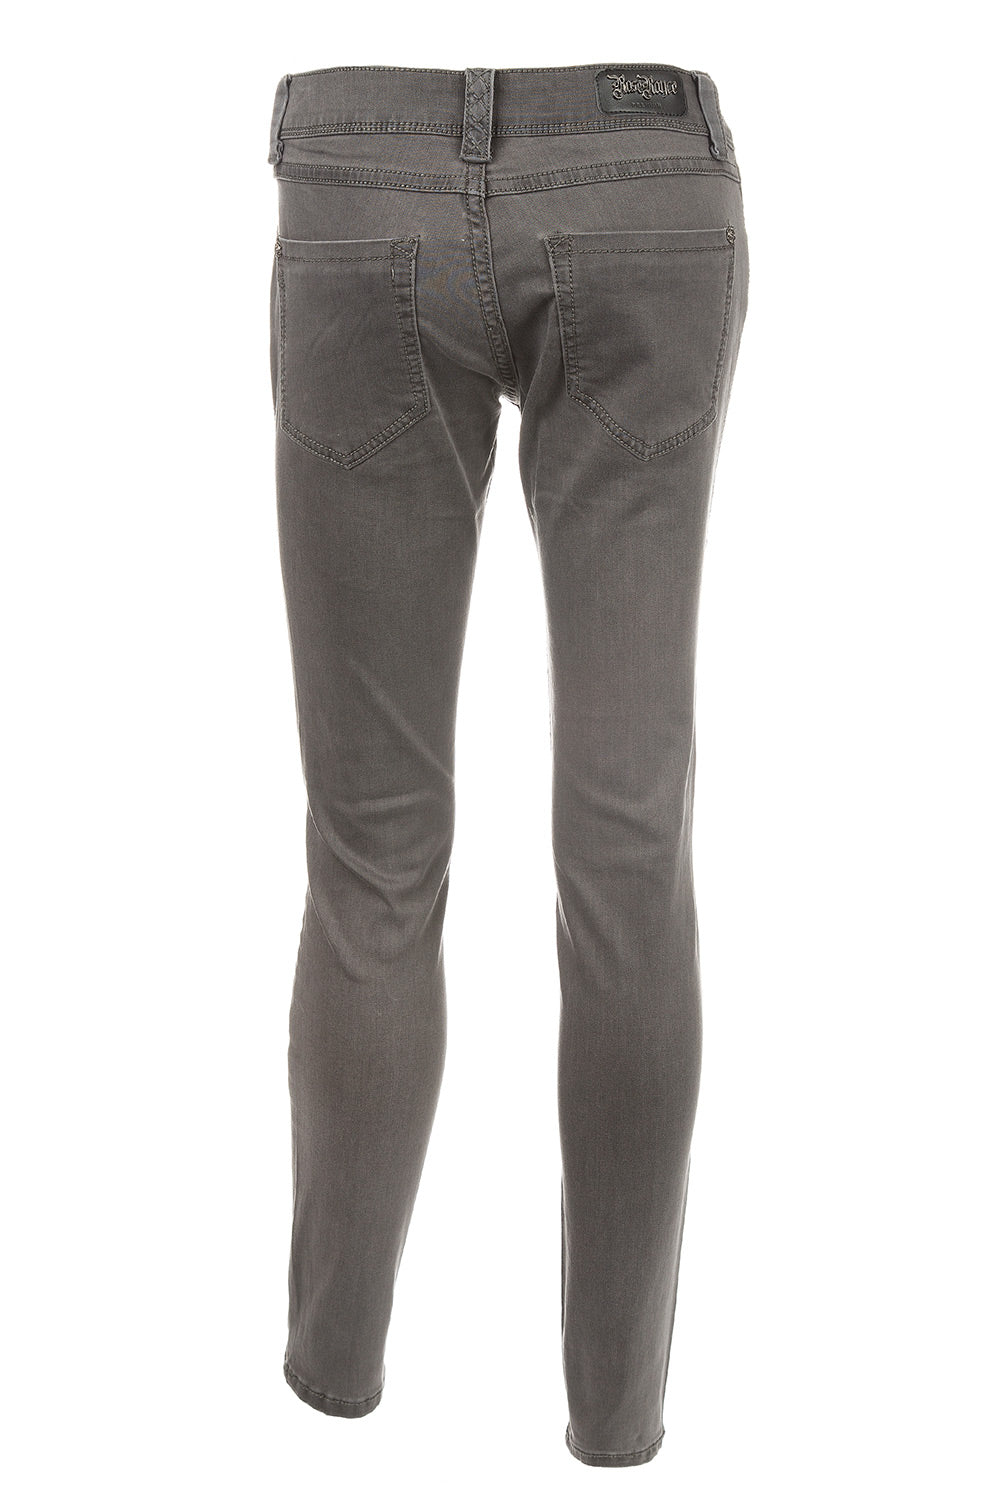 Type 2 Soft Slate Pants